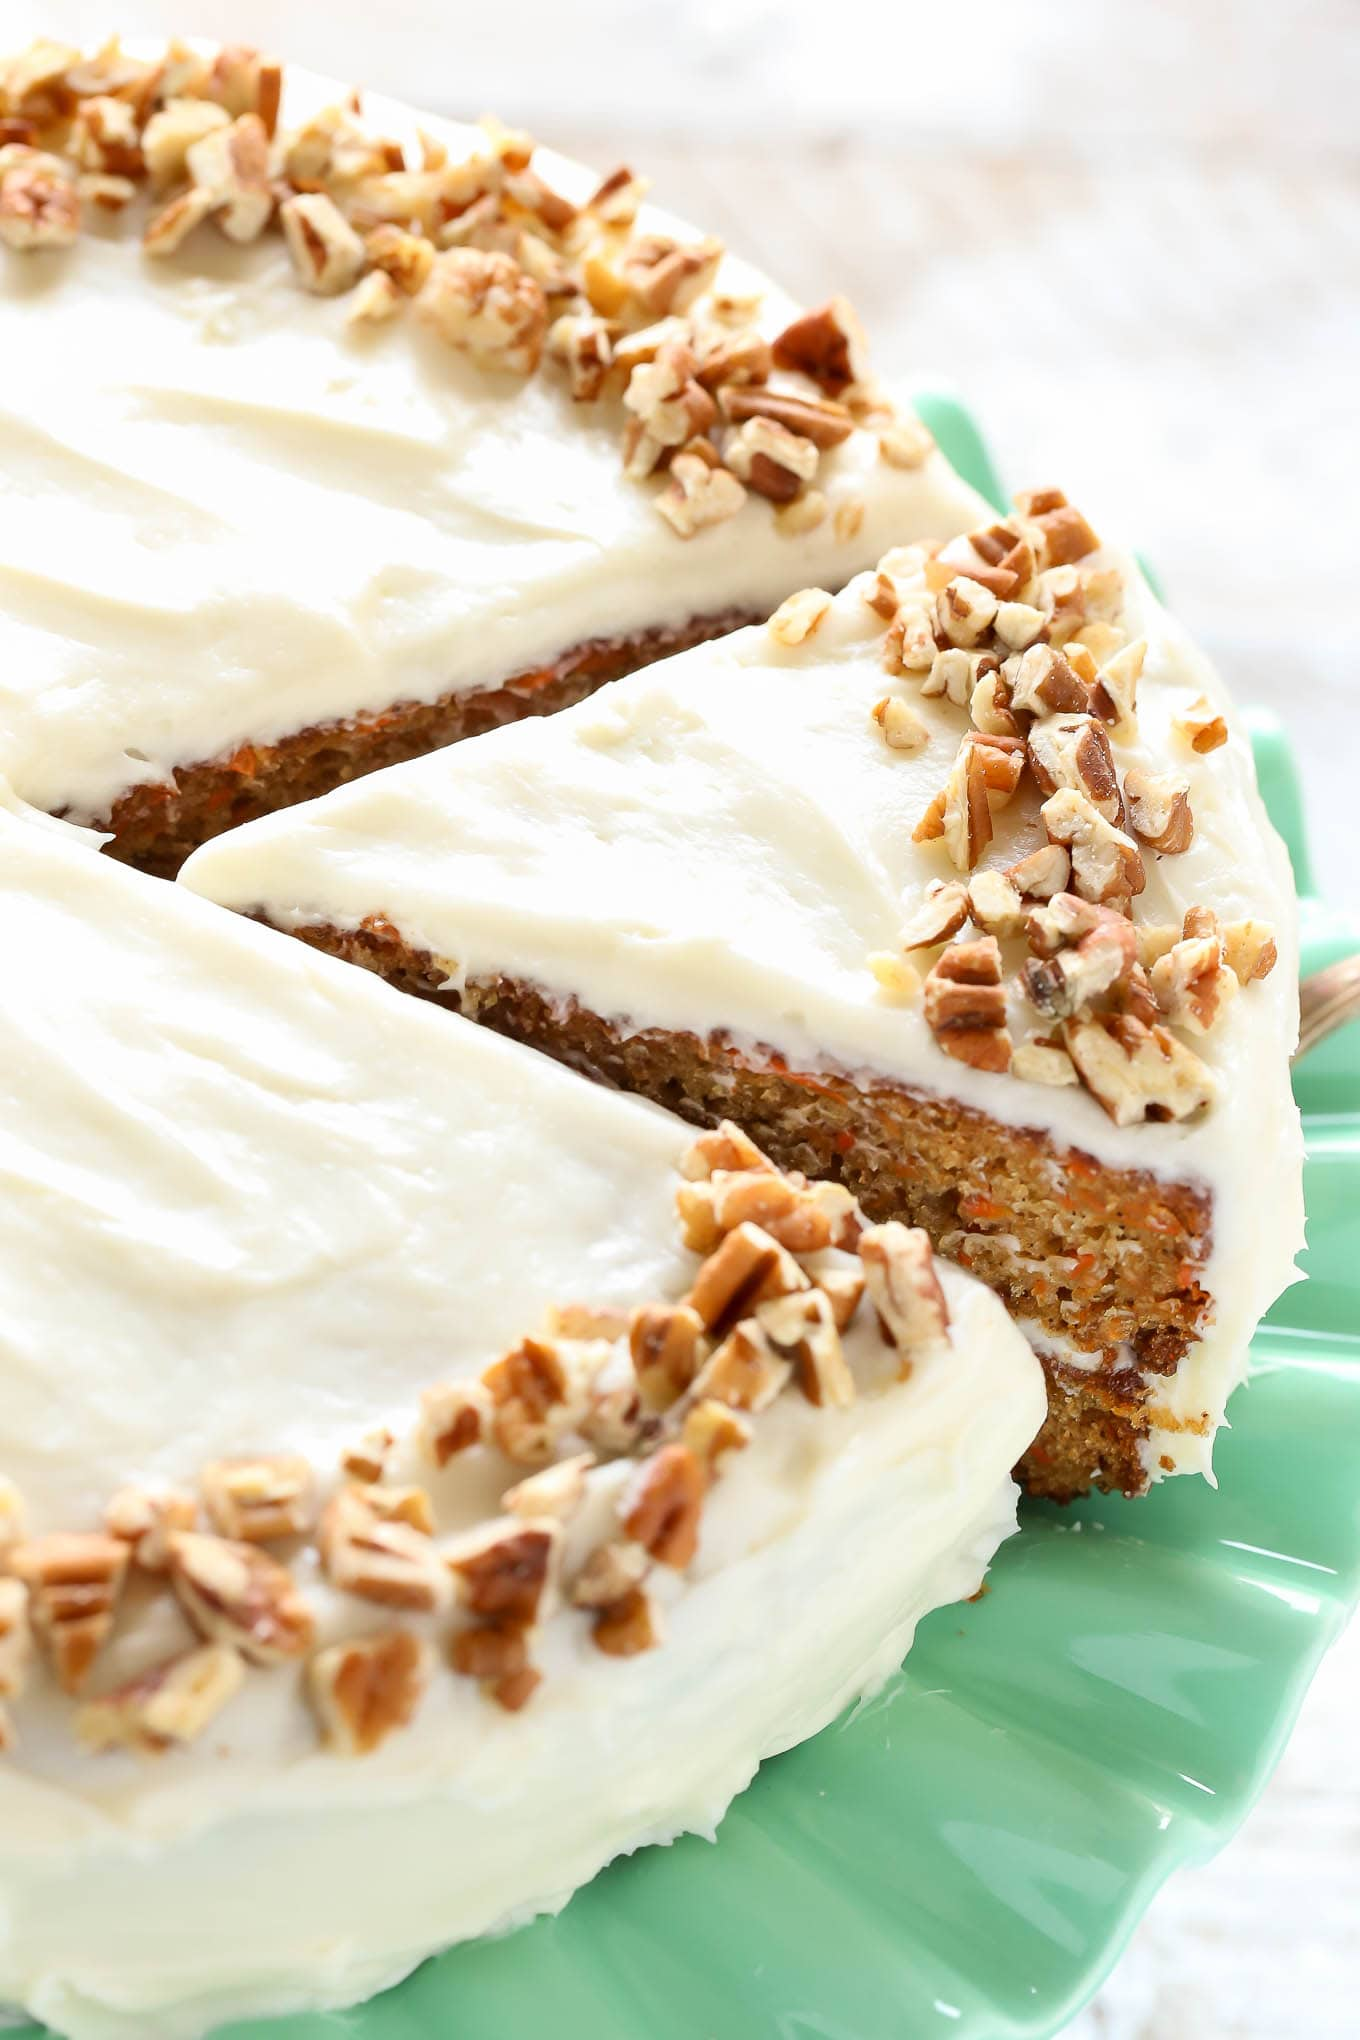 This is my favorite recipe for homemade carrot cake! This cake is so easy to make, perfectly moist, and topped with an easy homemade cream cheese frosting.